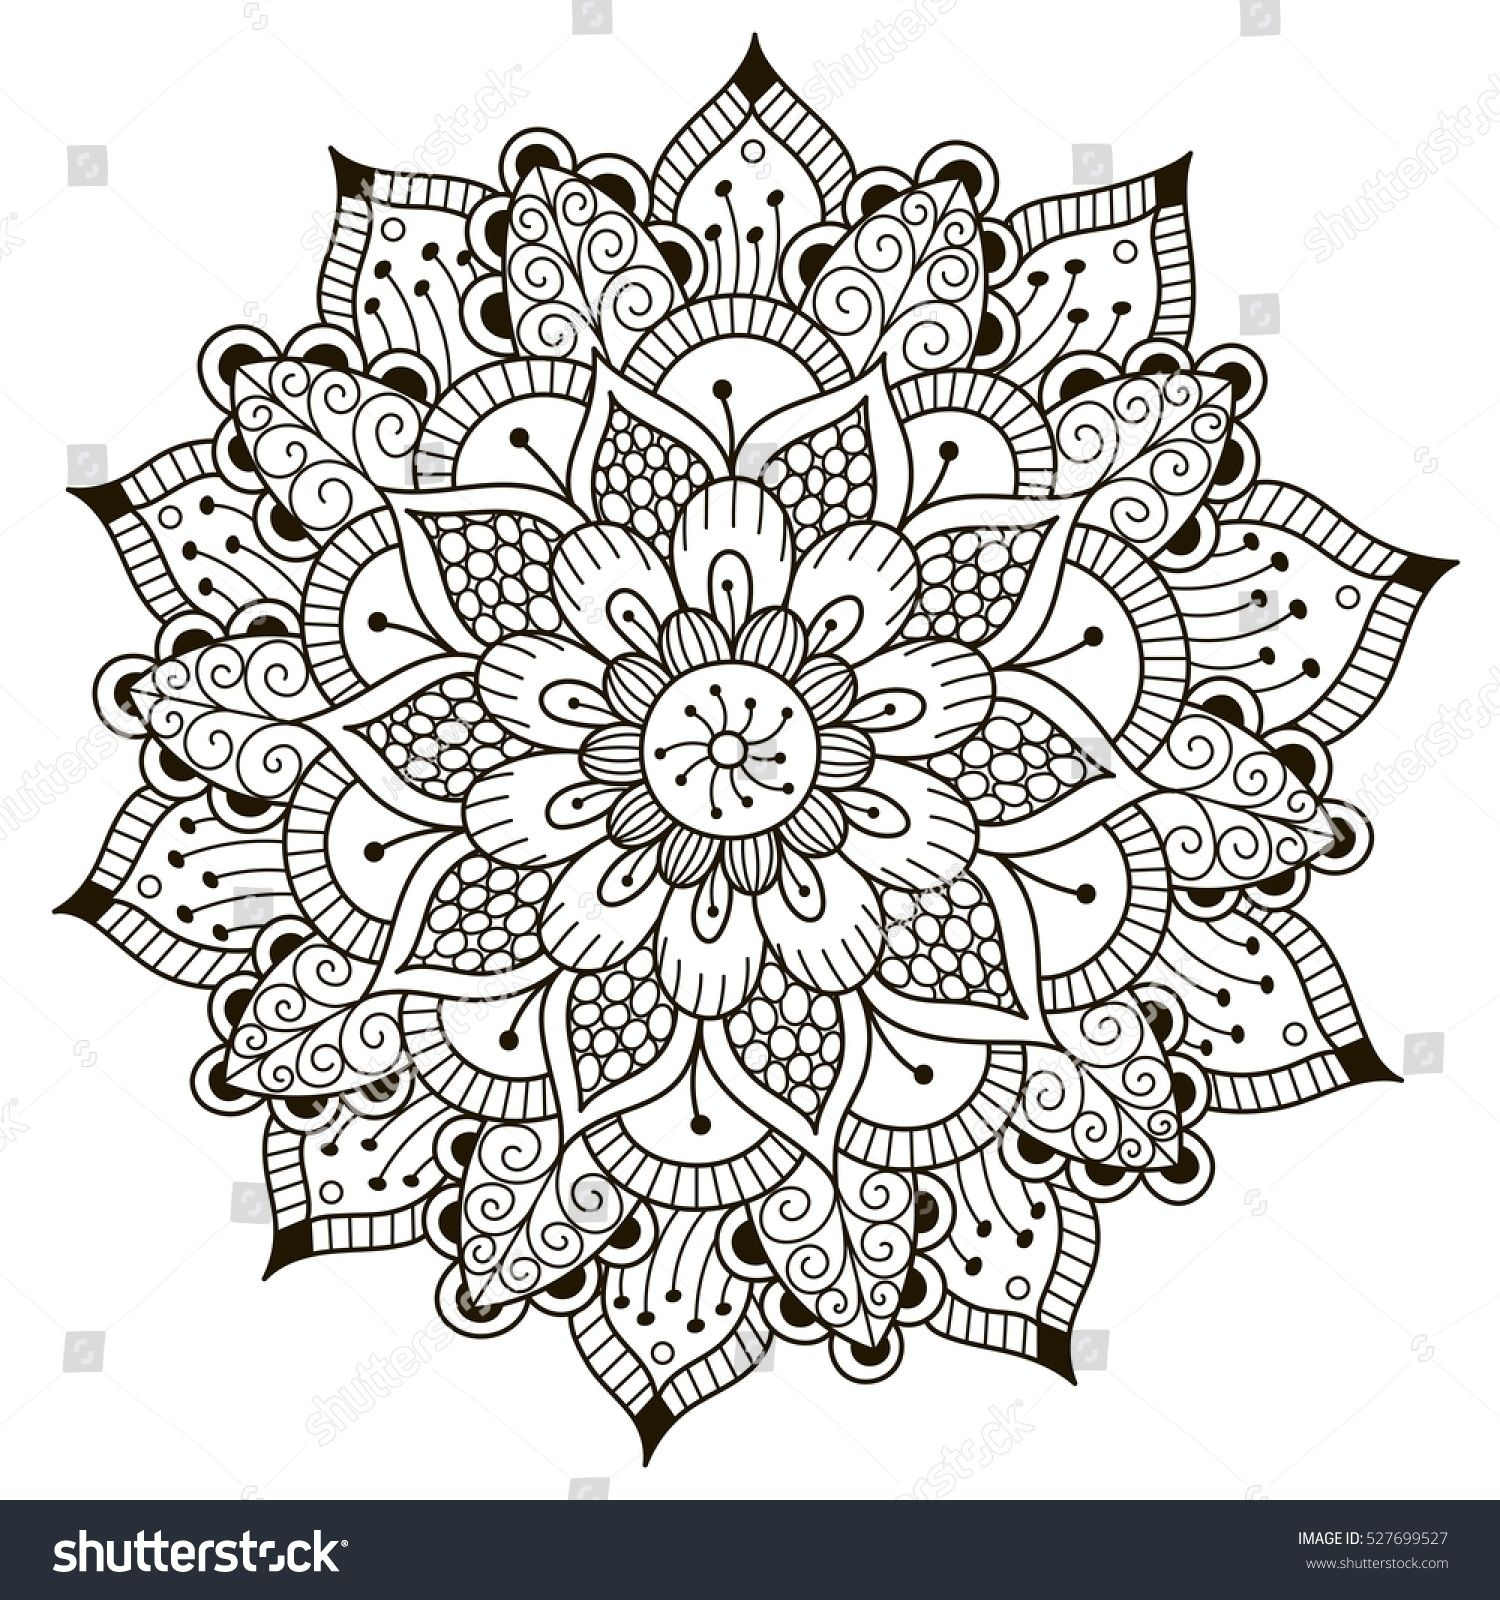 Christmas Kaleidoscope Coloring Pages With Flower 2259016